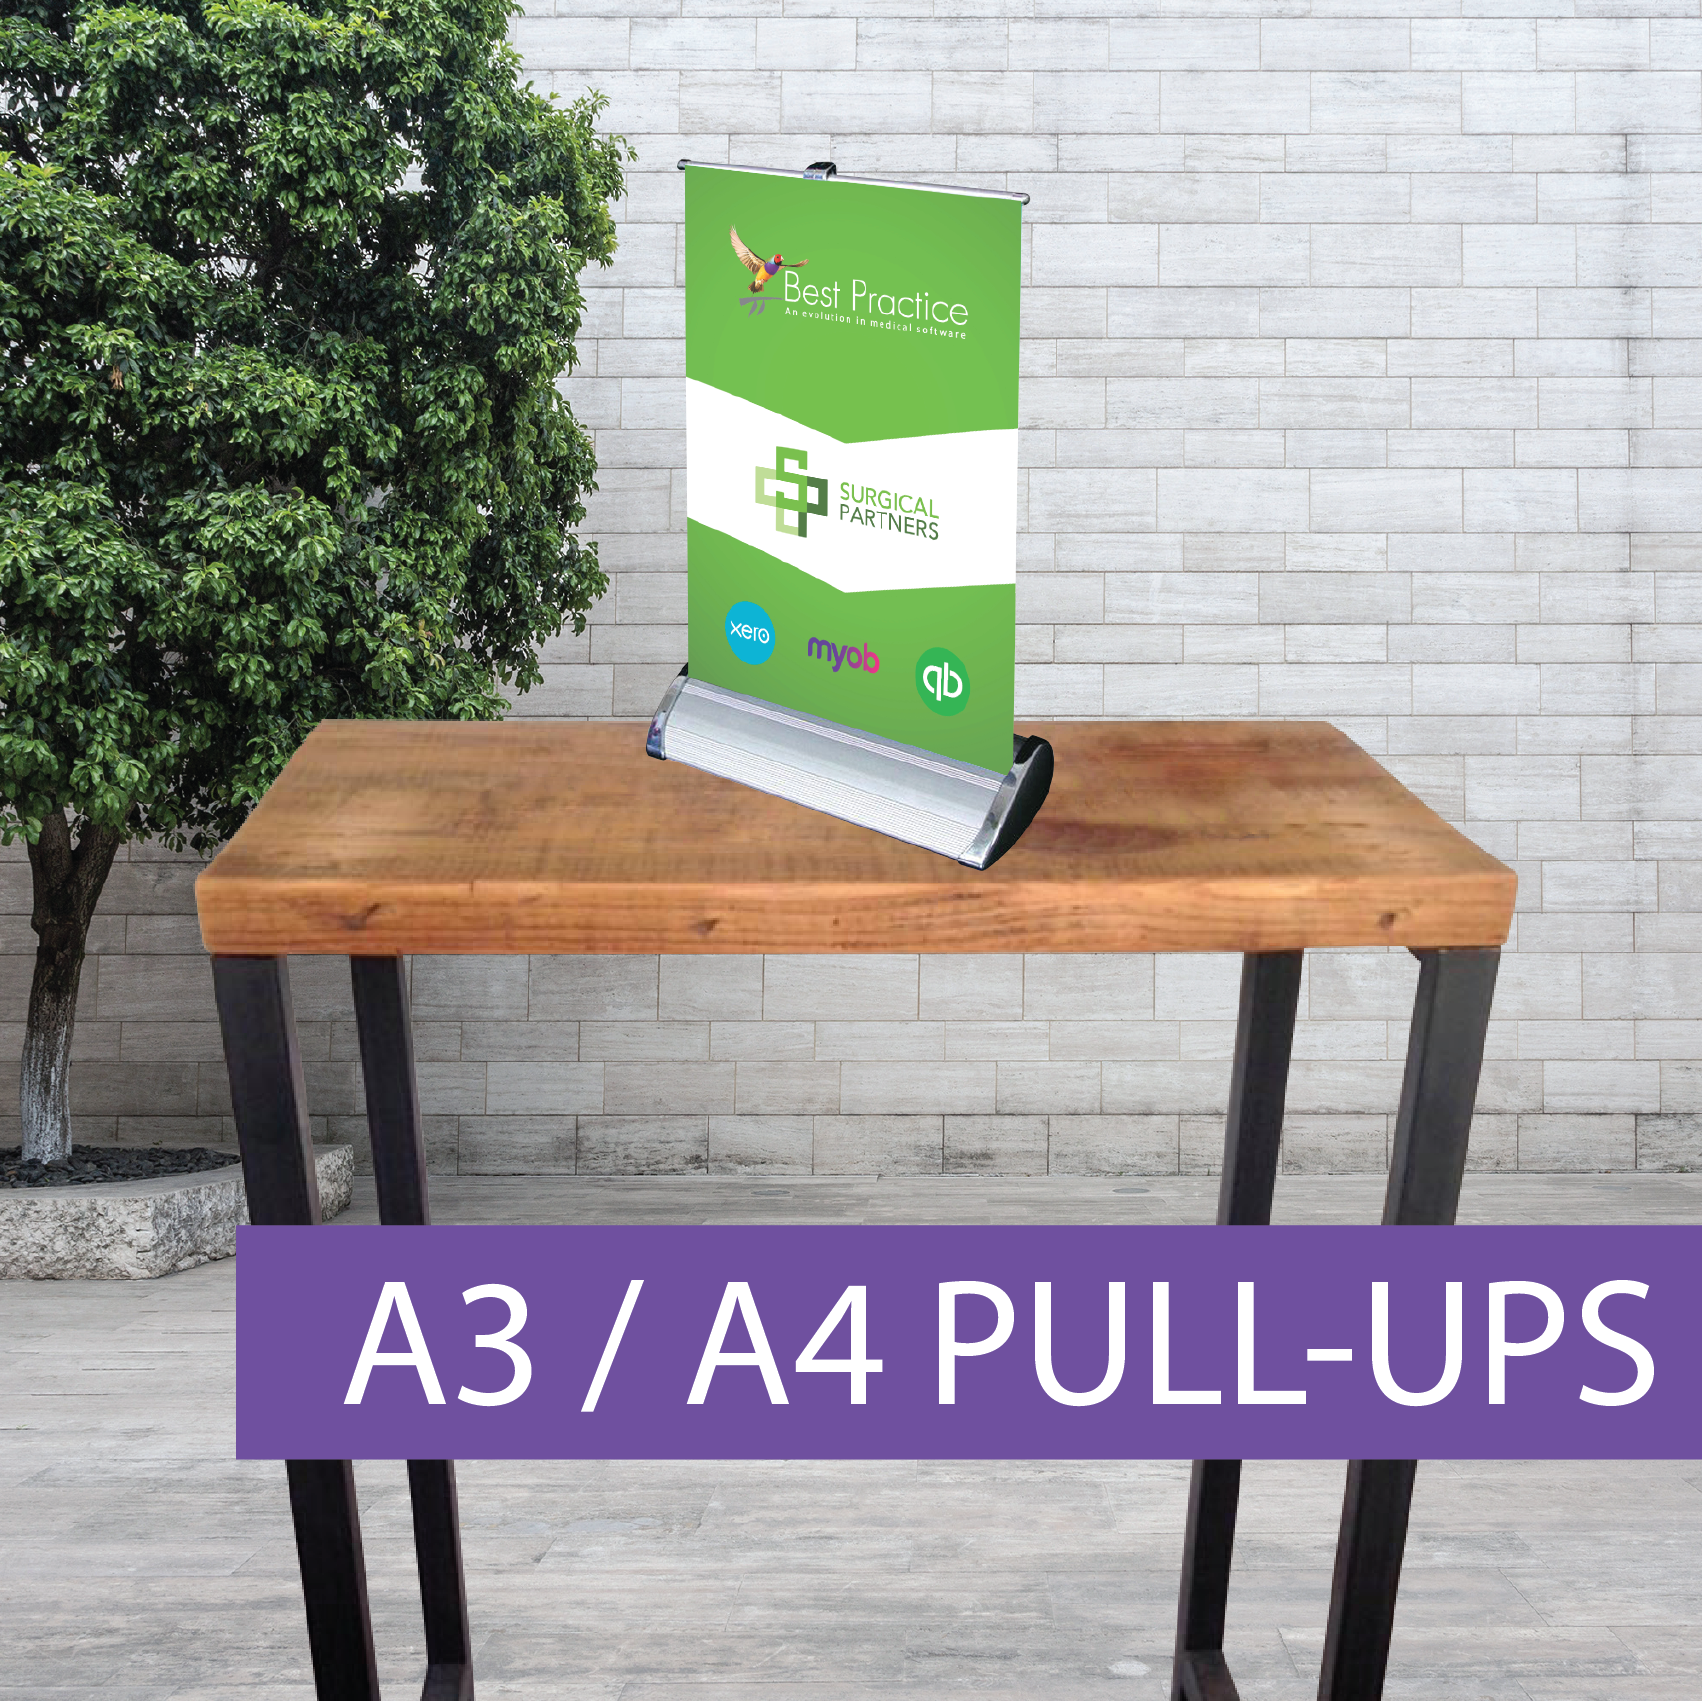 A4 Pull-up banner